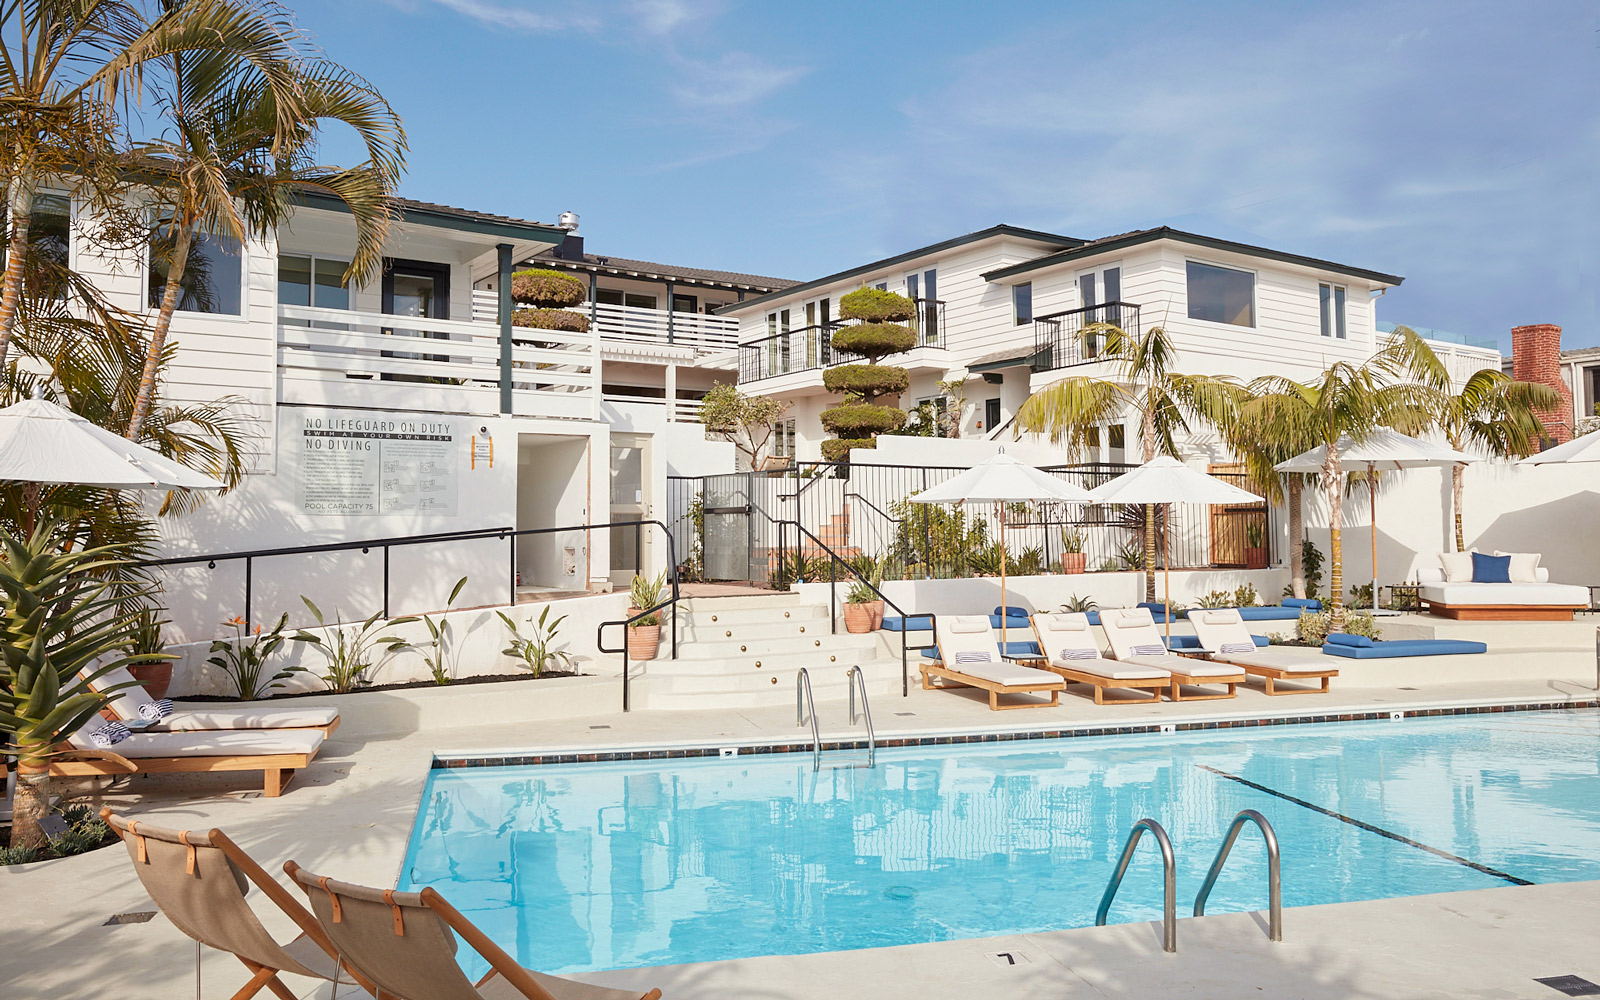 I Finally Understand the Wellness Travel Craze After Staying at This New Laguna Beach Hotel